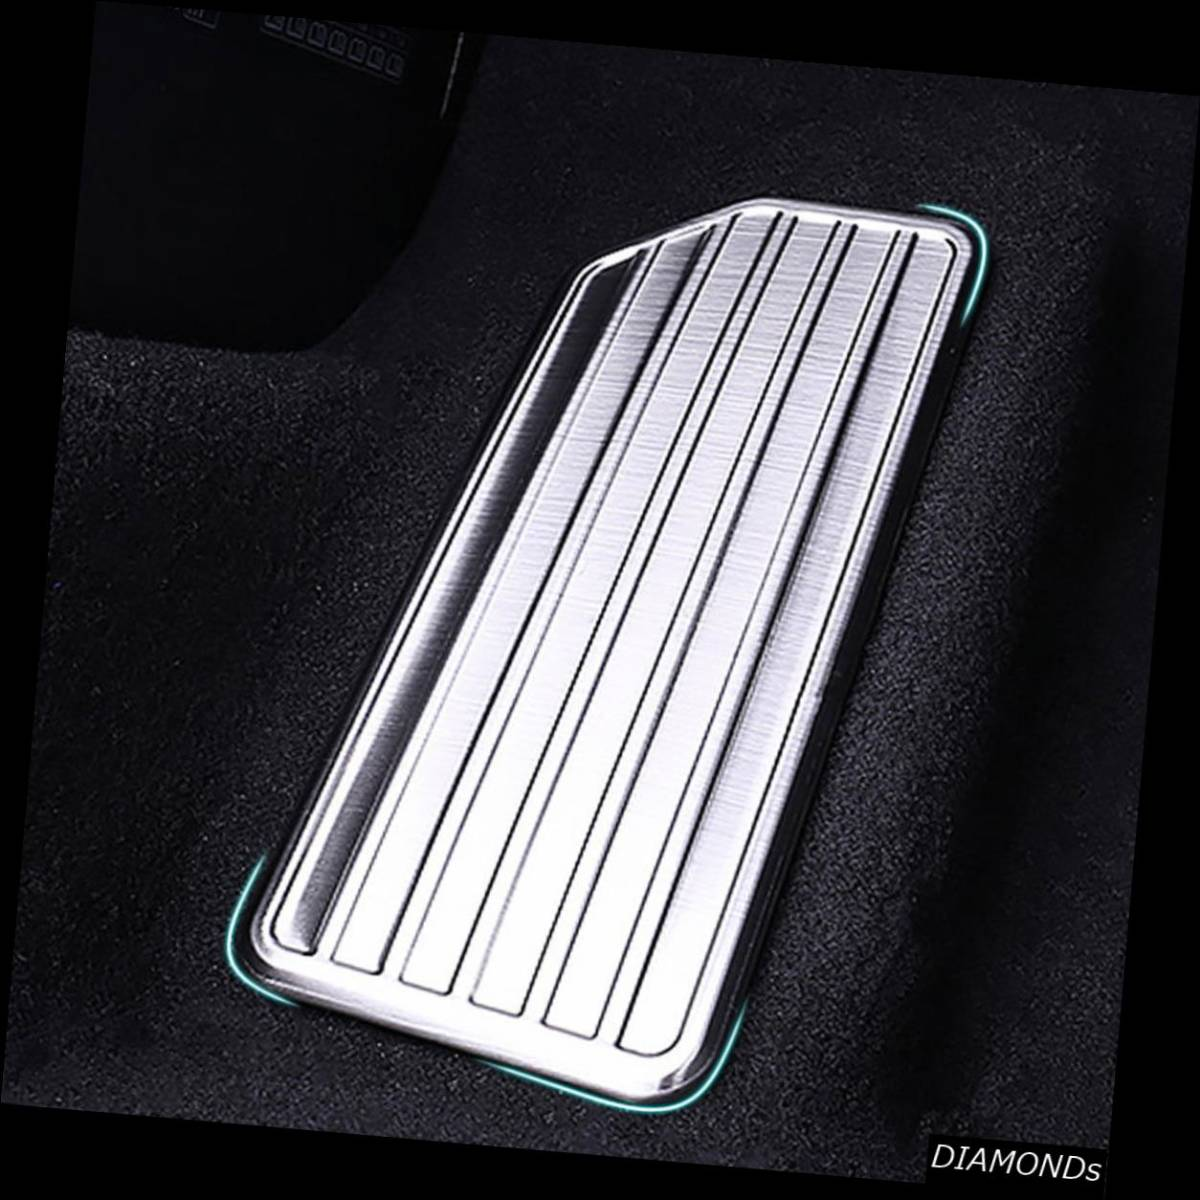 Stainless Steel Left Side Car Foot Rest Pedal Cover Trim for 2018 Honda Accord